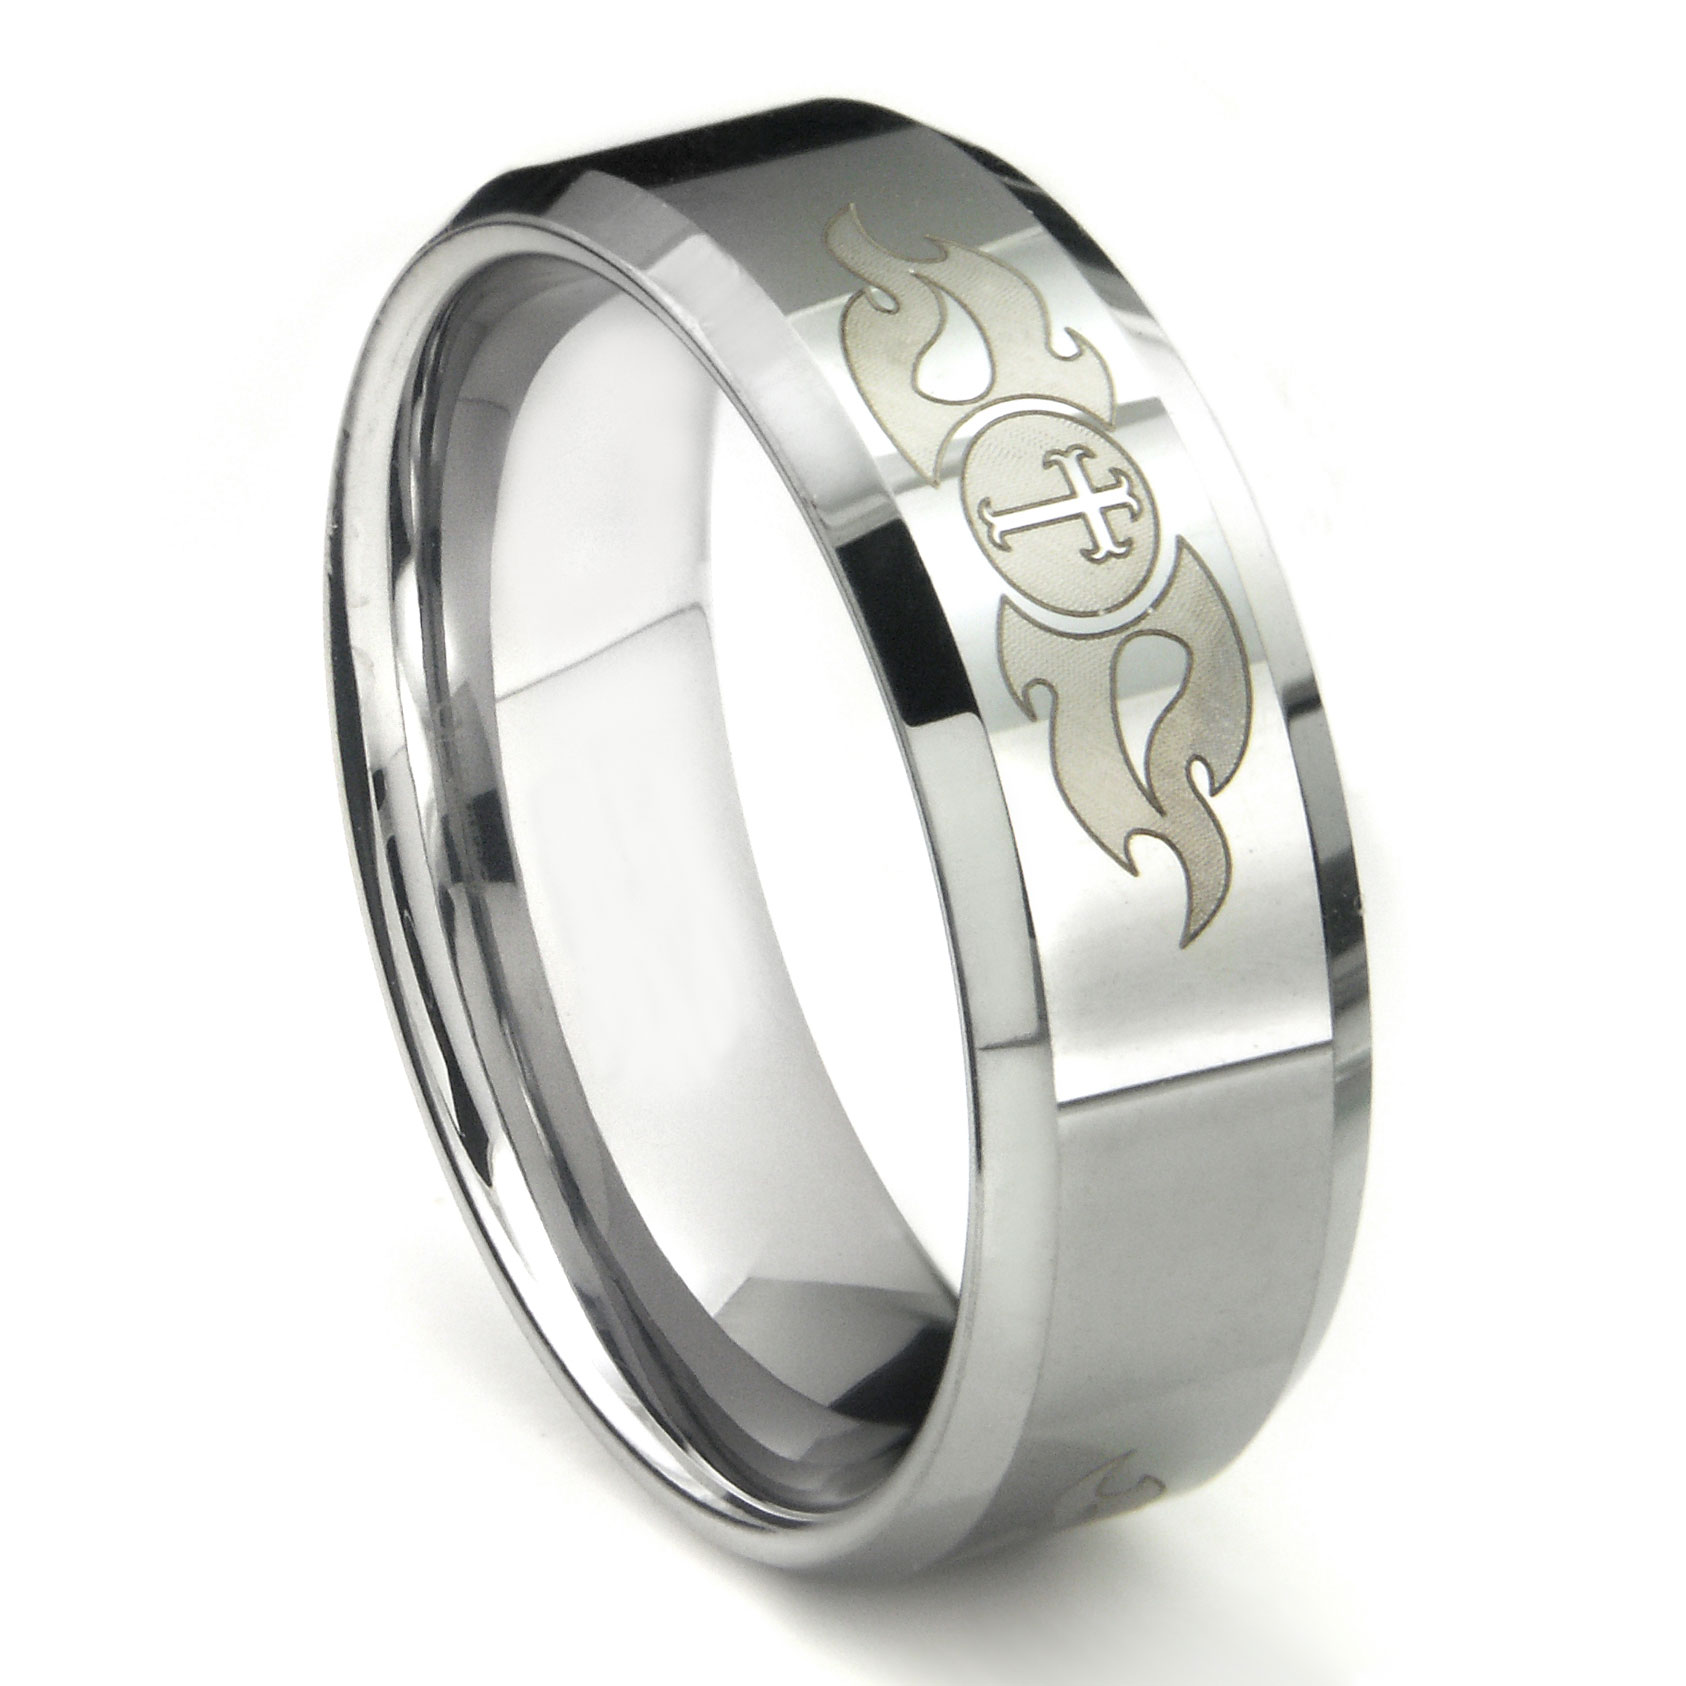 p ring s silver male wedding kr customized hand and engraved jewel flic rings pin